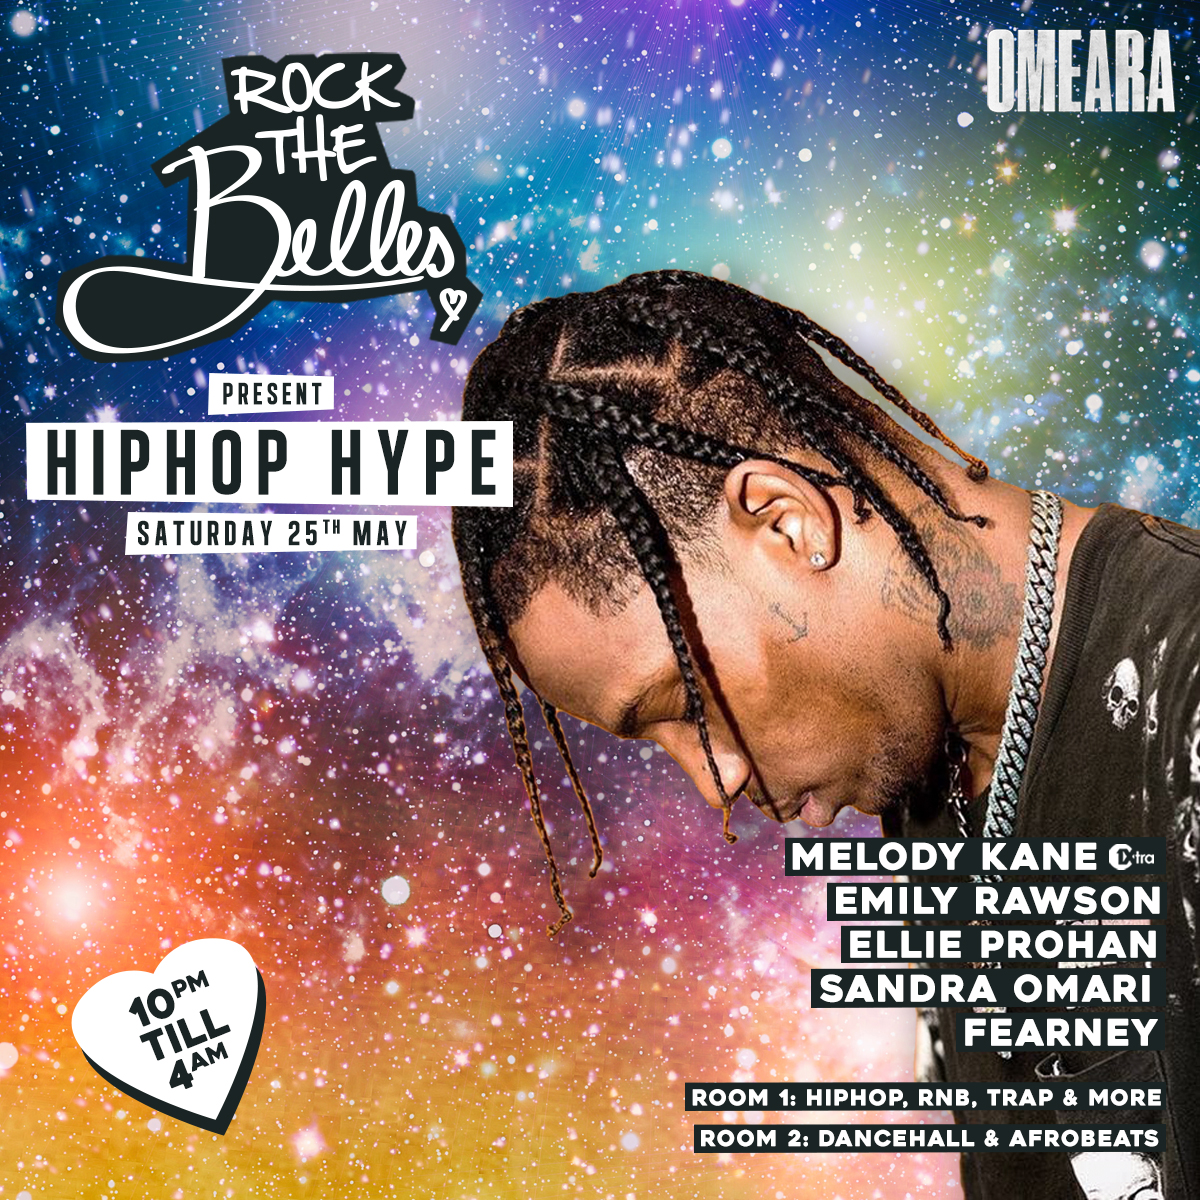 Rock The Belles x Hiphop Hype x Omeara